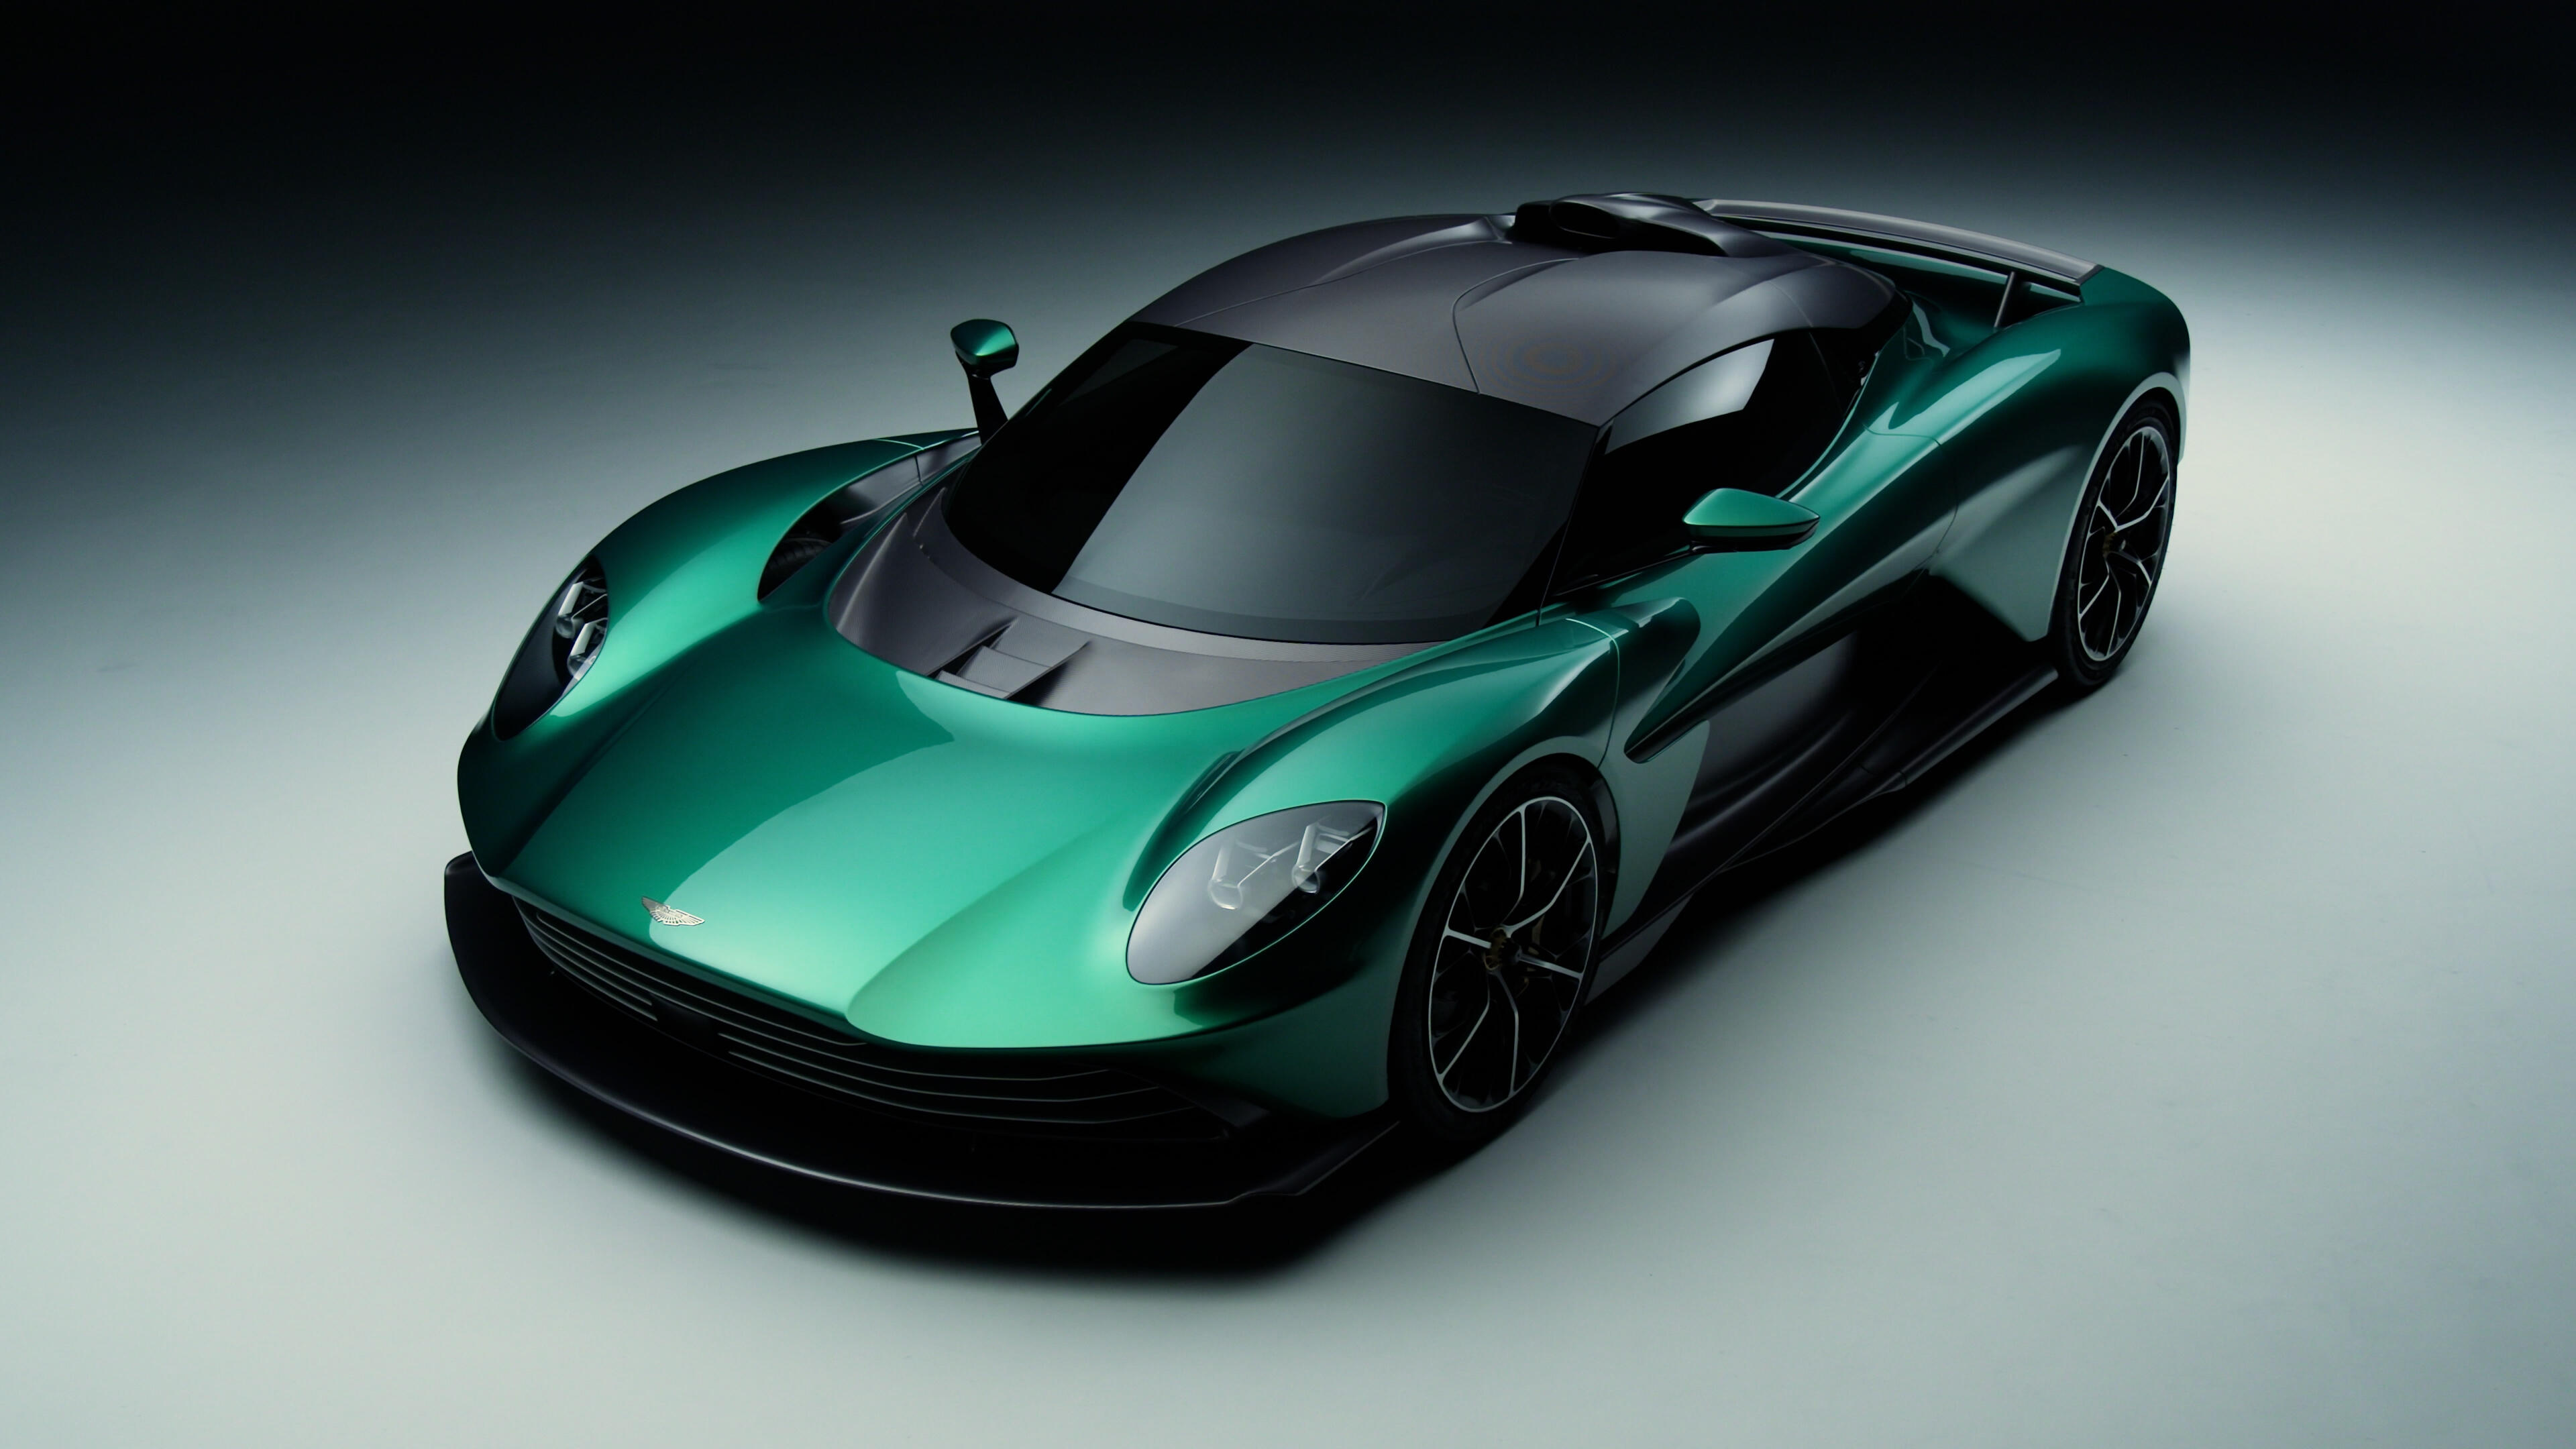 Video: The Aston Martin Valhalla promises to give the competition a run for its money